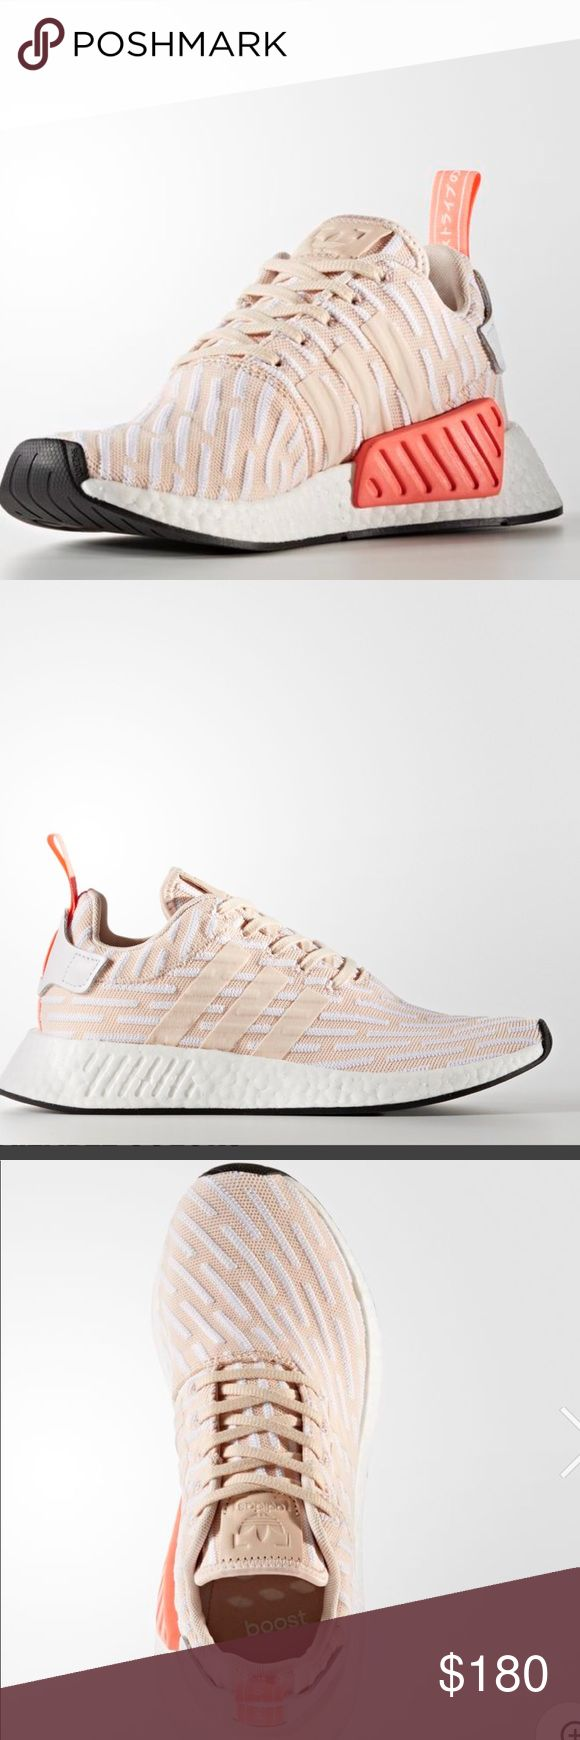 Coming soon...ADIDAS -NMD R2 shoes. Size:9.5 New Authentic ADIDAS NMD R2. Size:9.5 women🌸                                                               ✅primeknit boost.                                                             ✅New with box and tags.                                                       ✅May run big due to wide fit. Won't last🔥🔥🔥 ADIDAS Shoes Sneakers